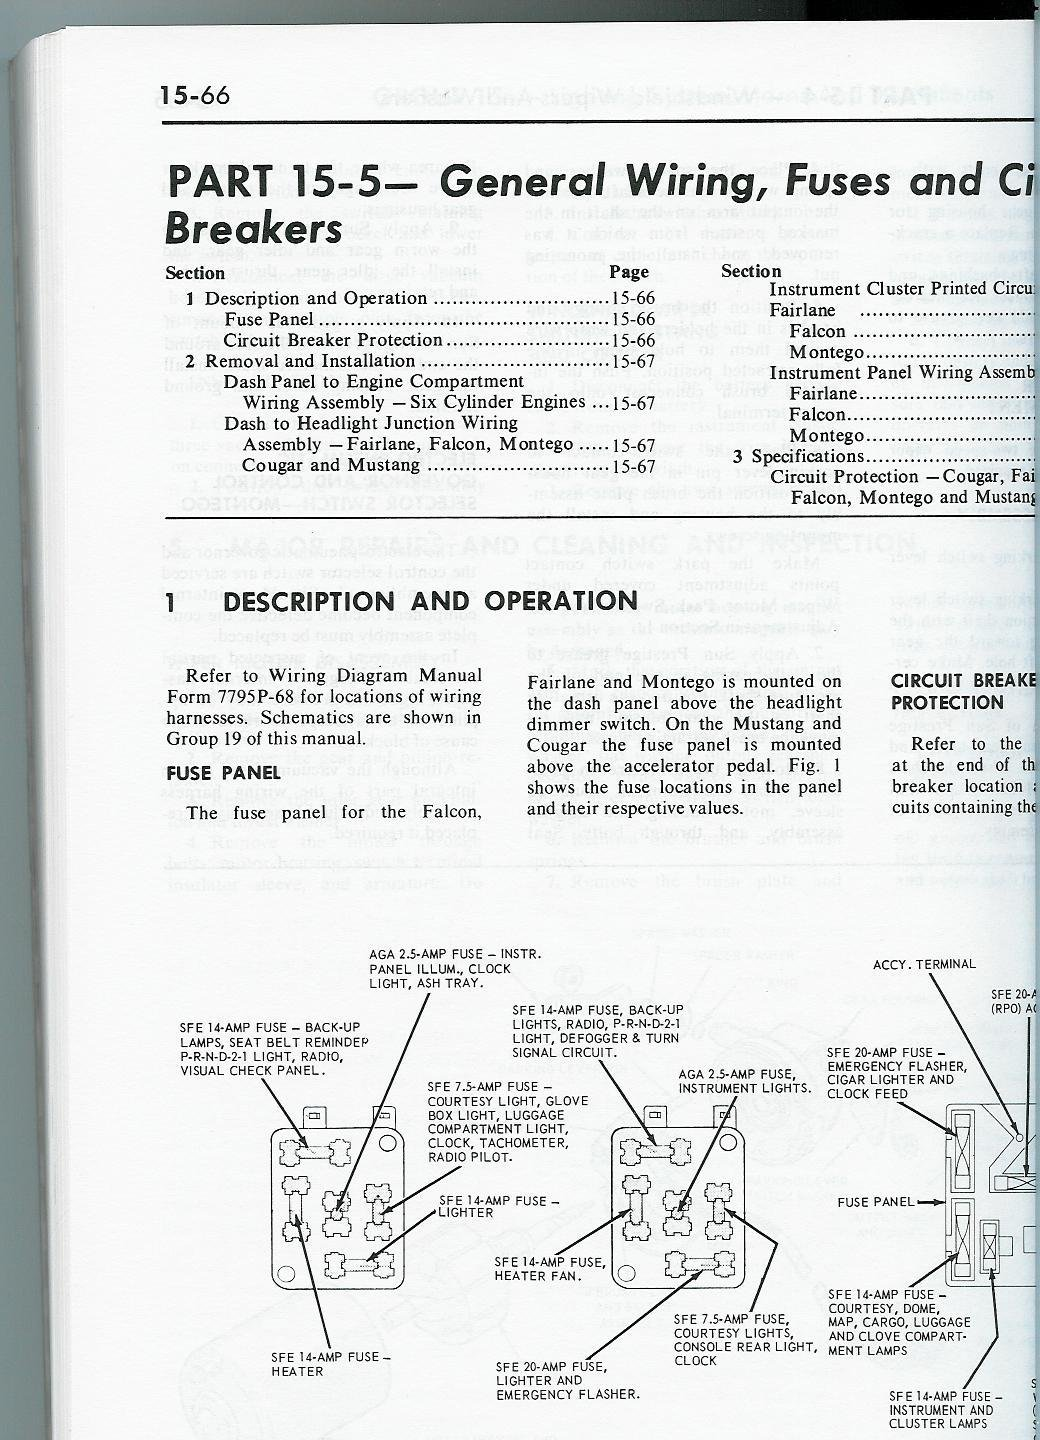 1968 mustang fuse box electrical diagrams schematics 1968 camaro fuse box  diagram 1968 camaro fuse box